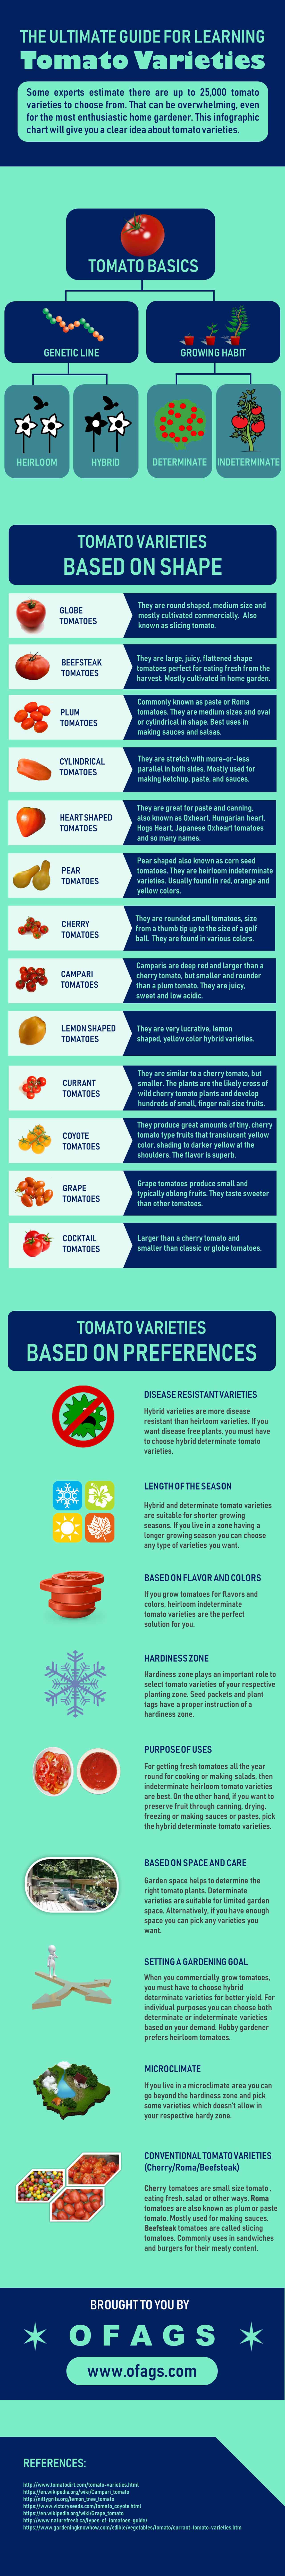 types of tomatoes, tomato varieties